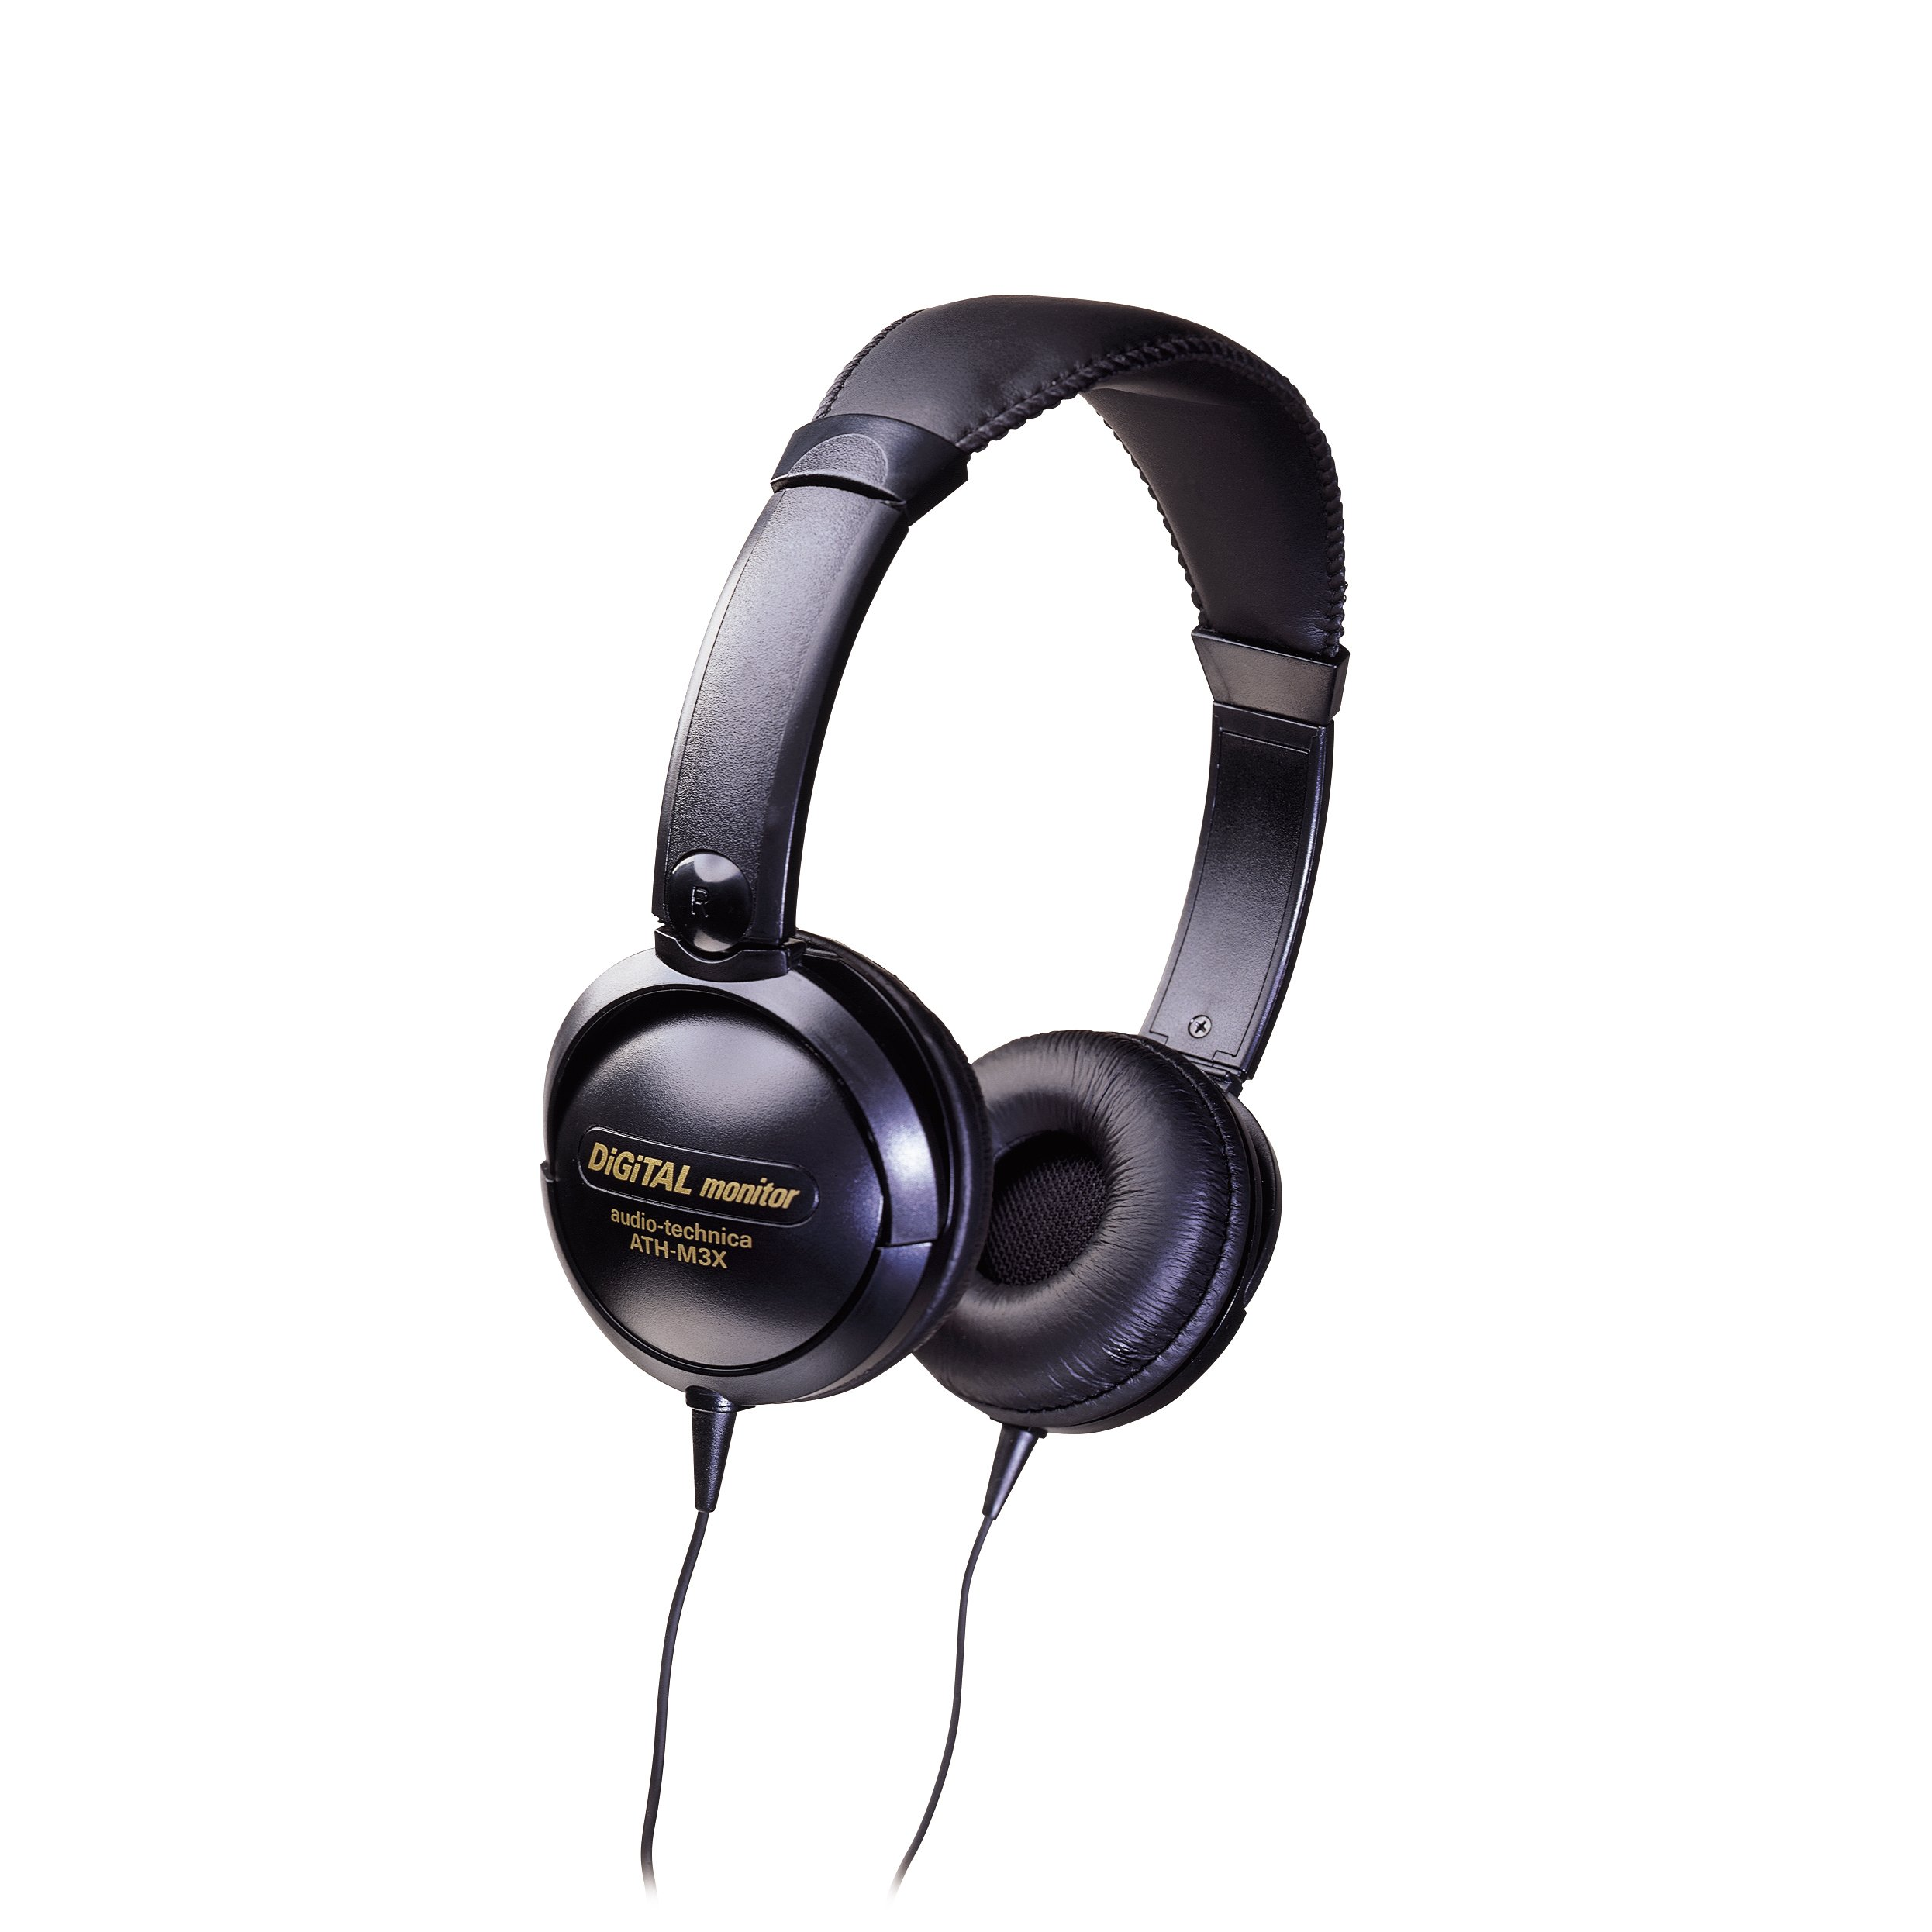 Audio-Technica ATH-M3X Mid-Size Closed-Back Dynamic Stereo Headphones